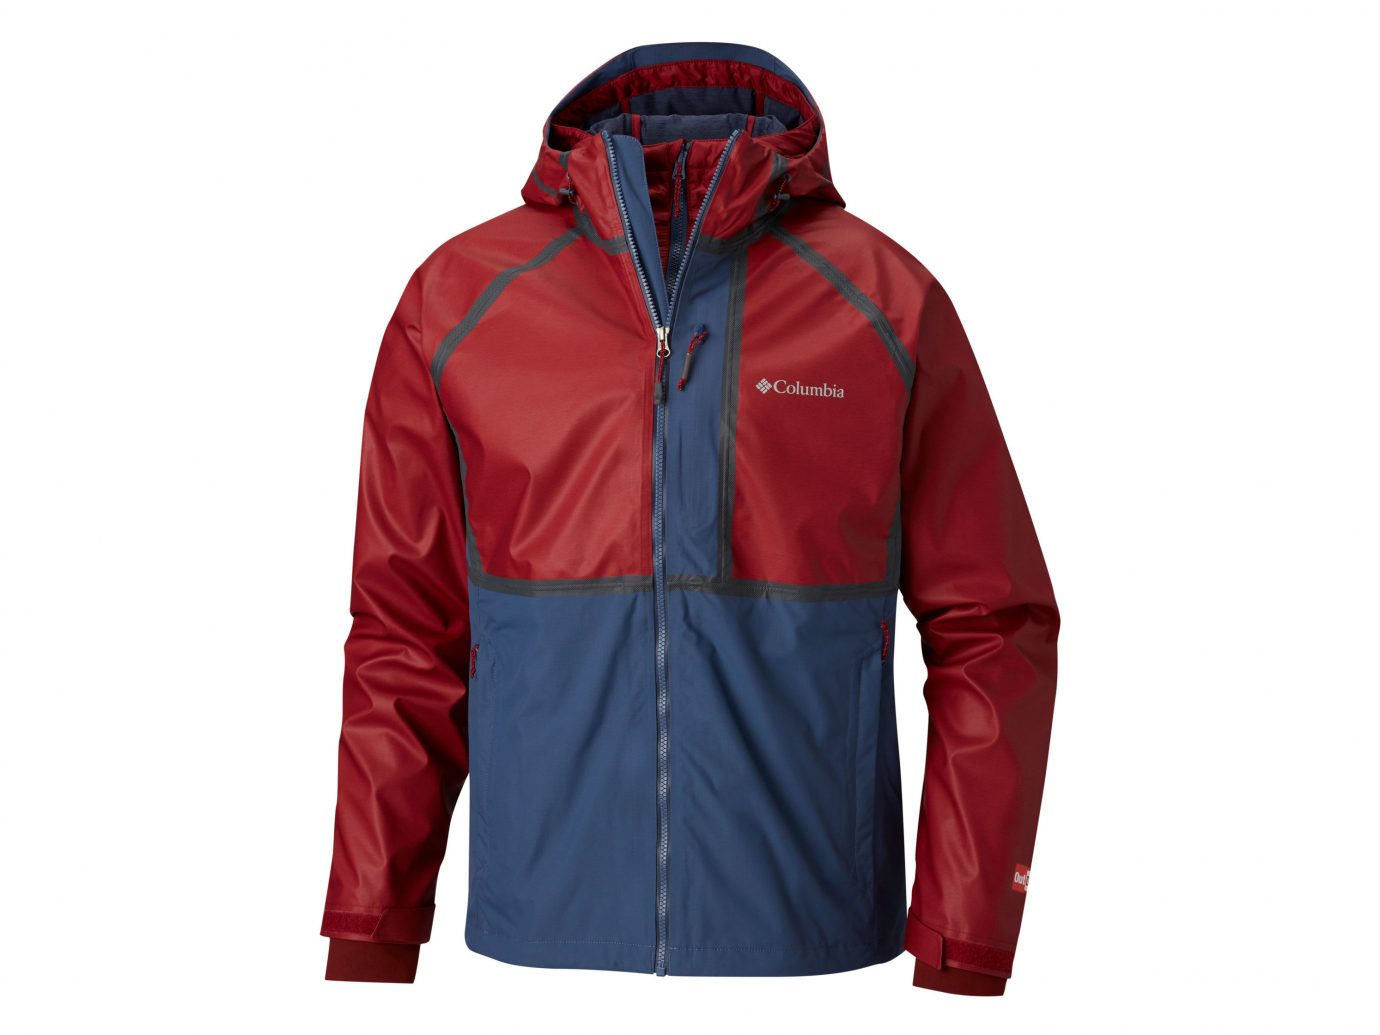 News Travel Shop Travel Tech hood red person clothing jacket wearing suit sweatshirt standing outerwear electric blue hoodie polar fleece coat product sleeve puffer dressed work-clothing